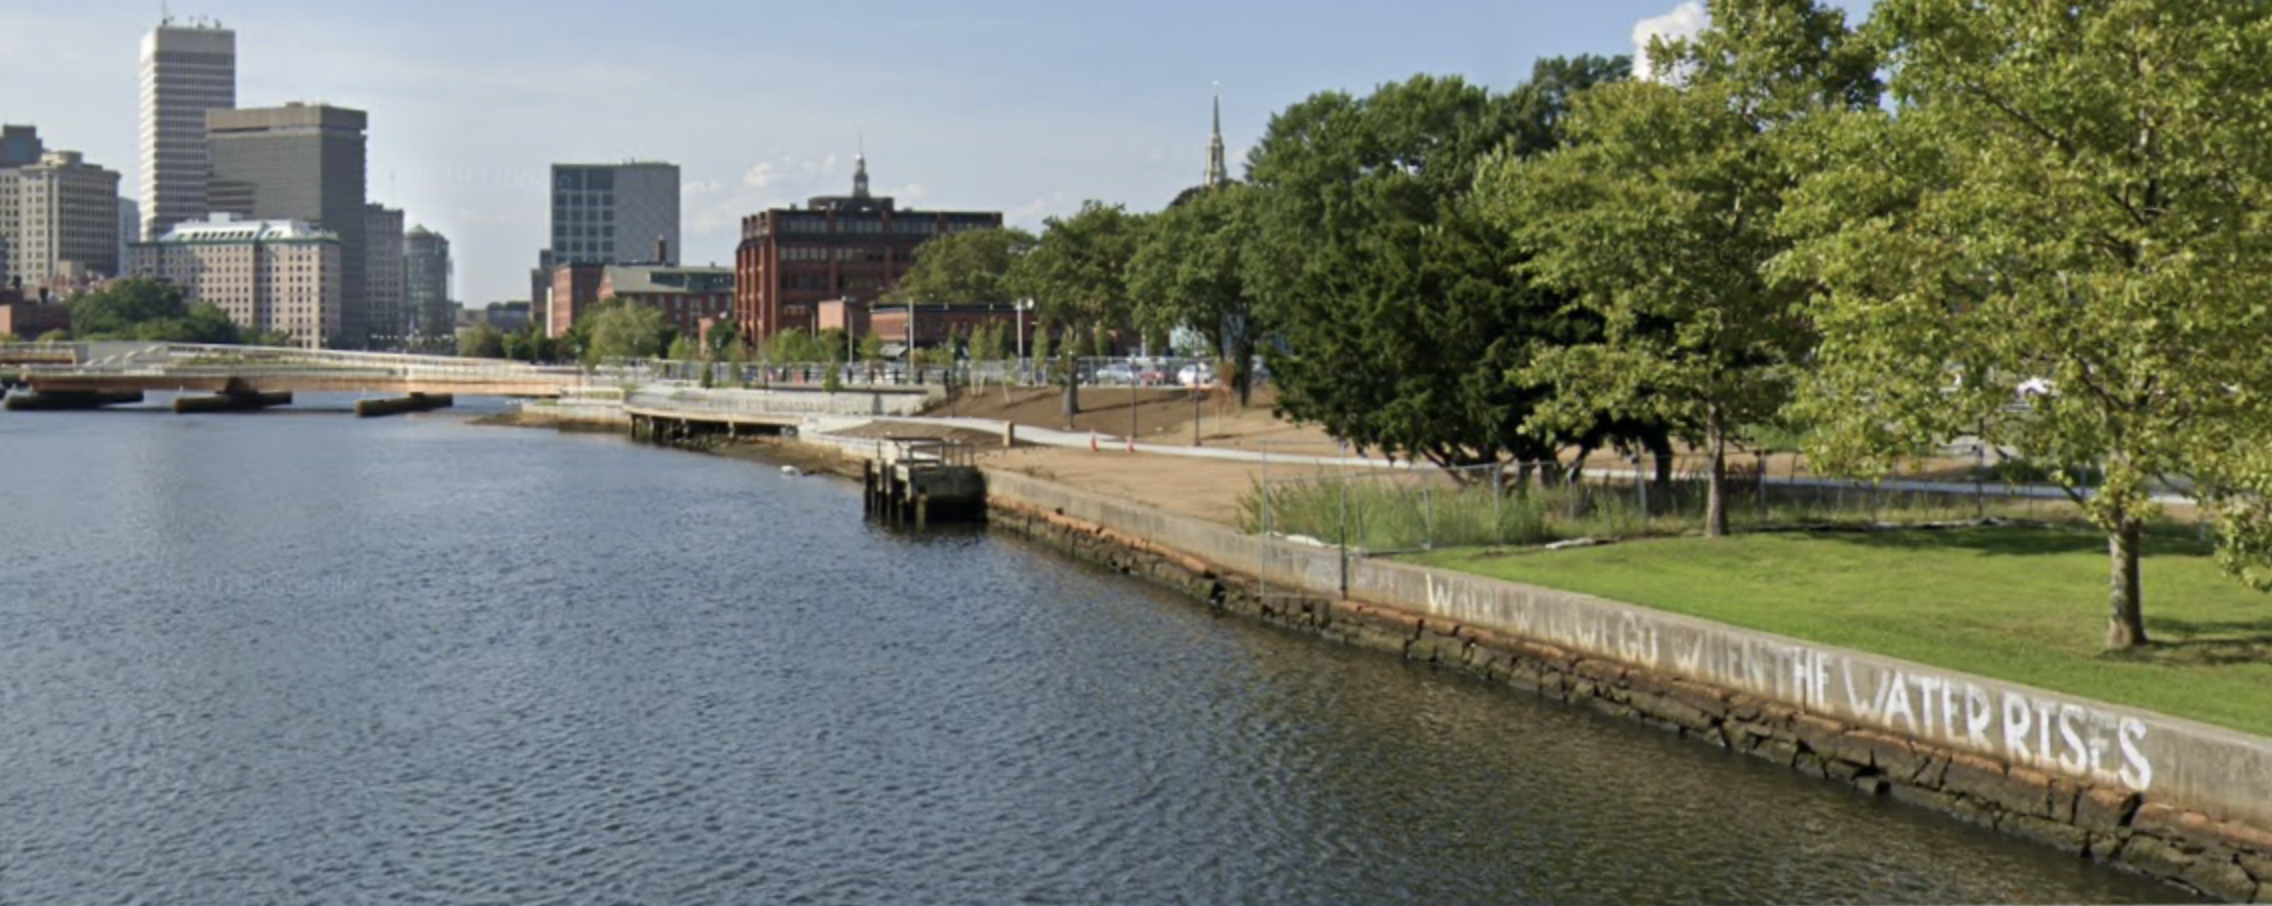 Photograph of the Providence skyline, across a river. Painted on the river's concrete bank are the words: WHERE WILL WE GO WHEN THE WATER RISES